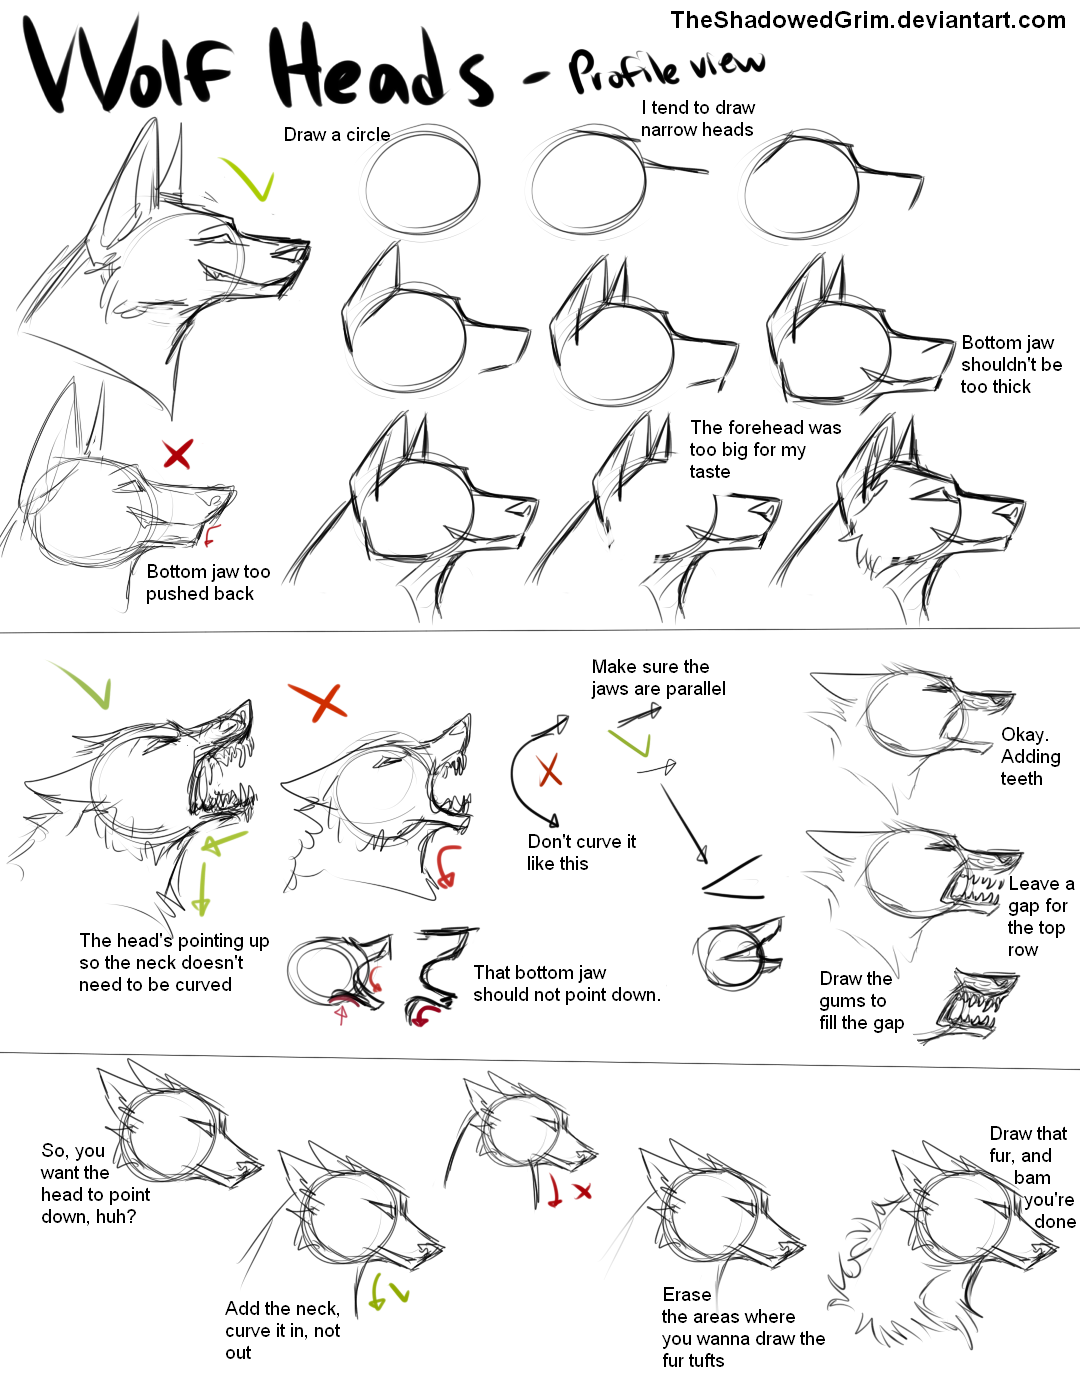 Lhuneart 798 26 How I Draw Wolf Heads By Theshadowedgrim